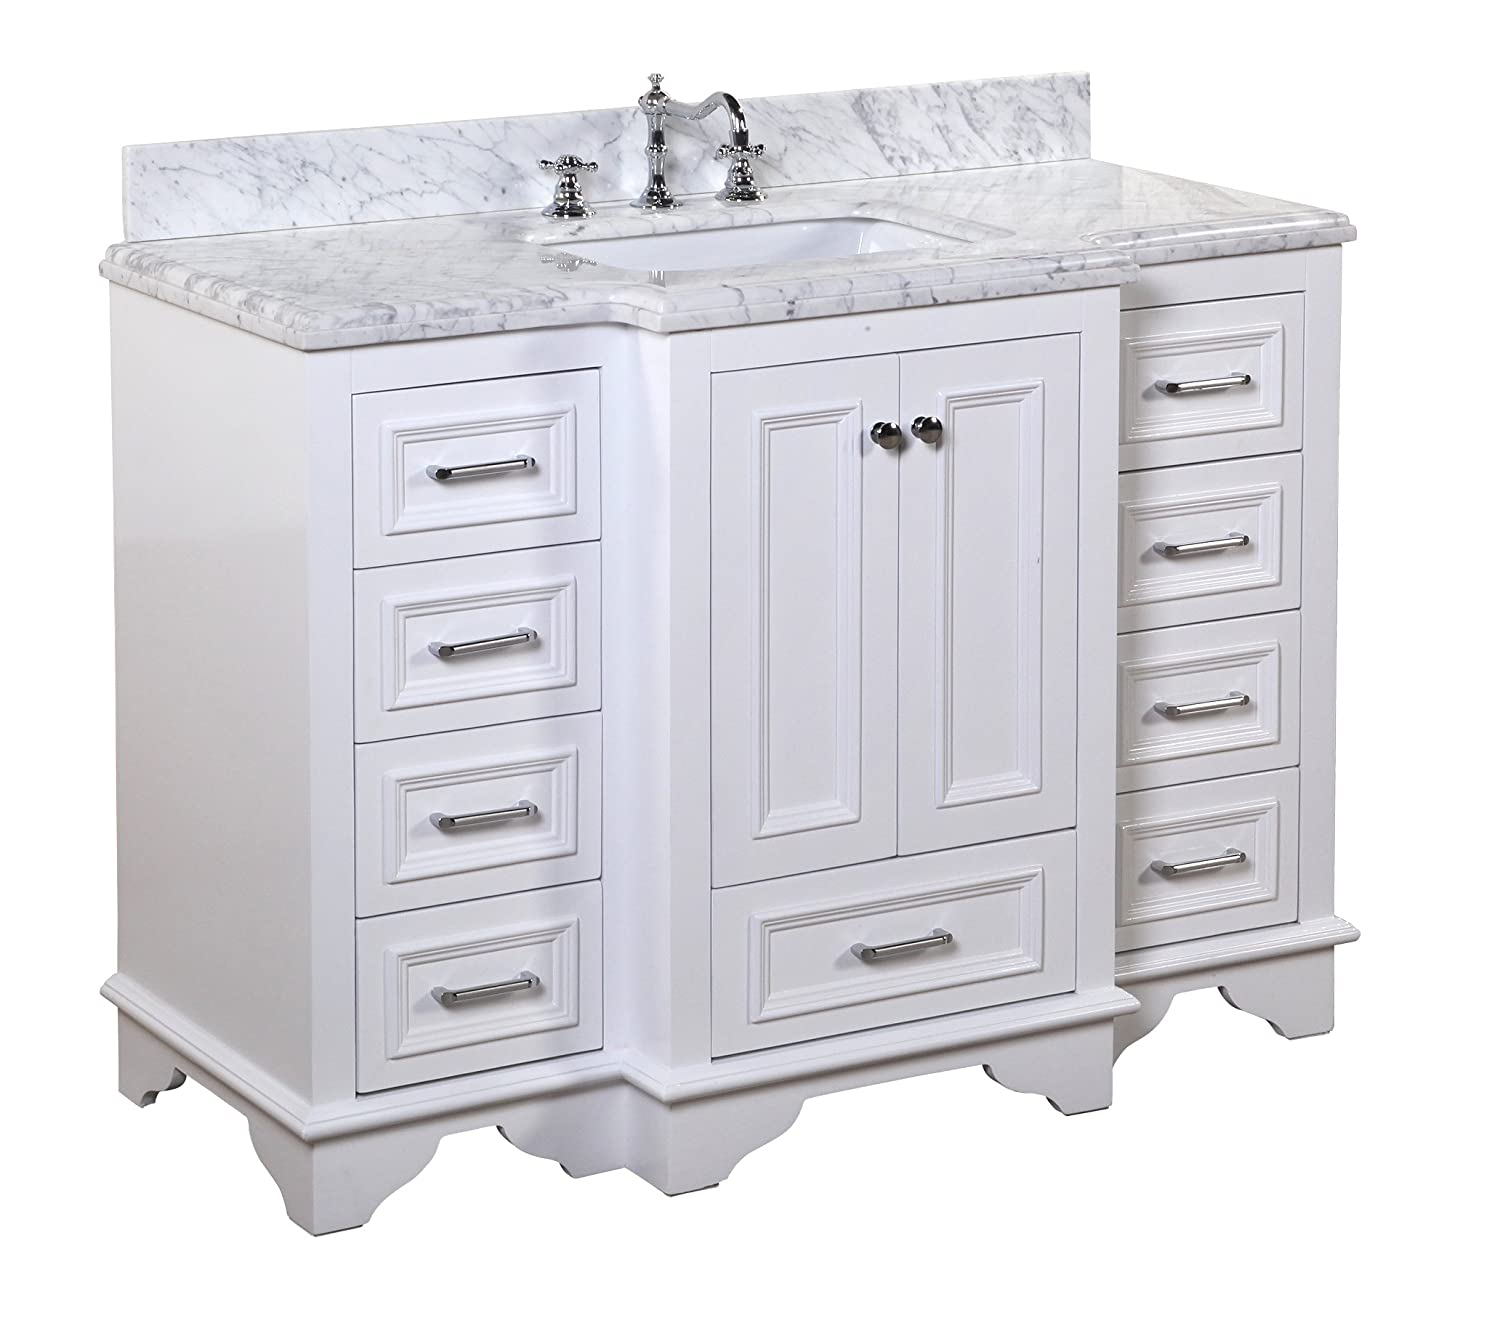 Nantucket 48-inch Bathroom Vanity Carrara White Includes White Cabinet with Soft Close Drawers Self Closing Doors, Authentic Italian Carrara Marble Top, and White Ceramic Sink